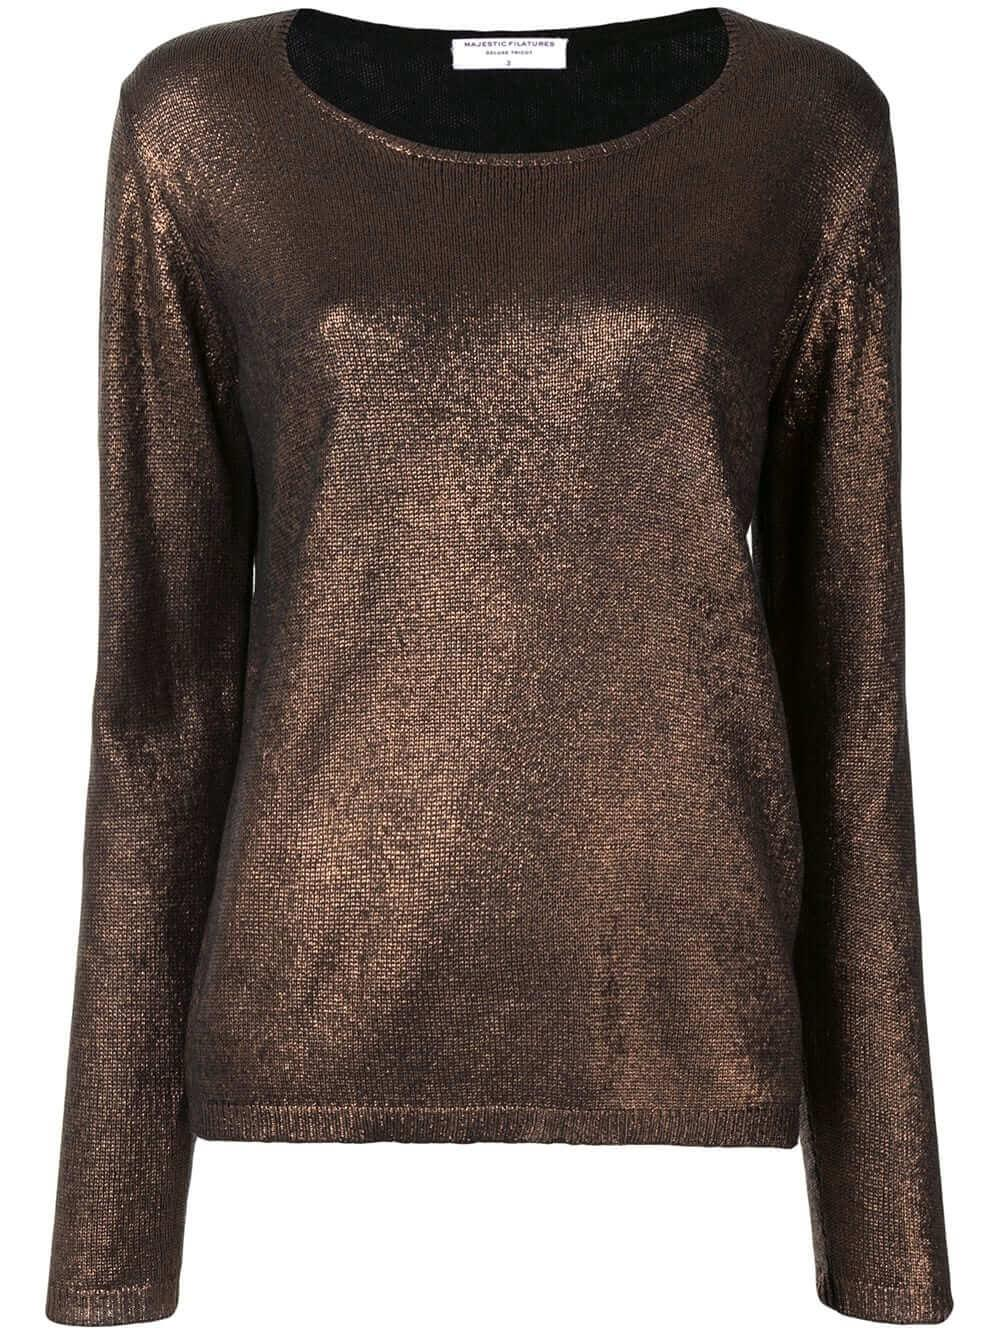 Metallic Crew Neck Sweater